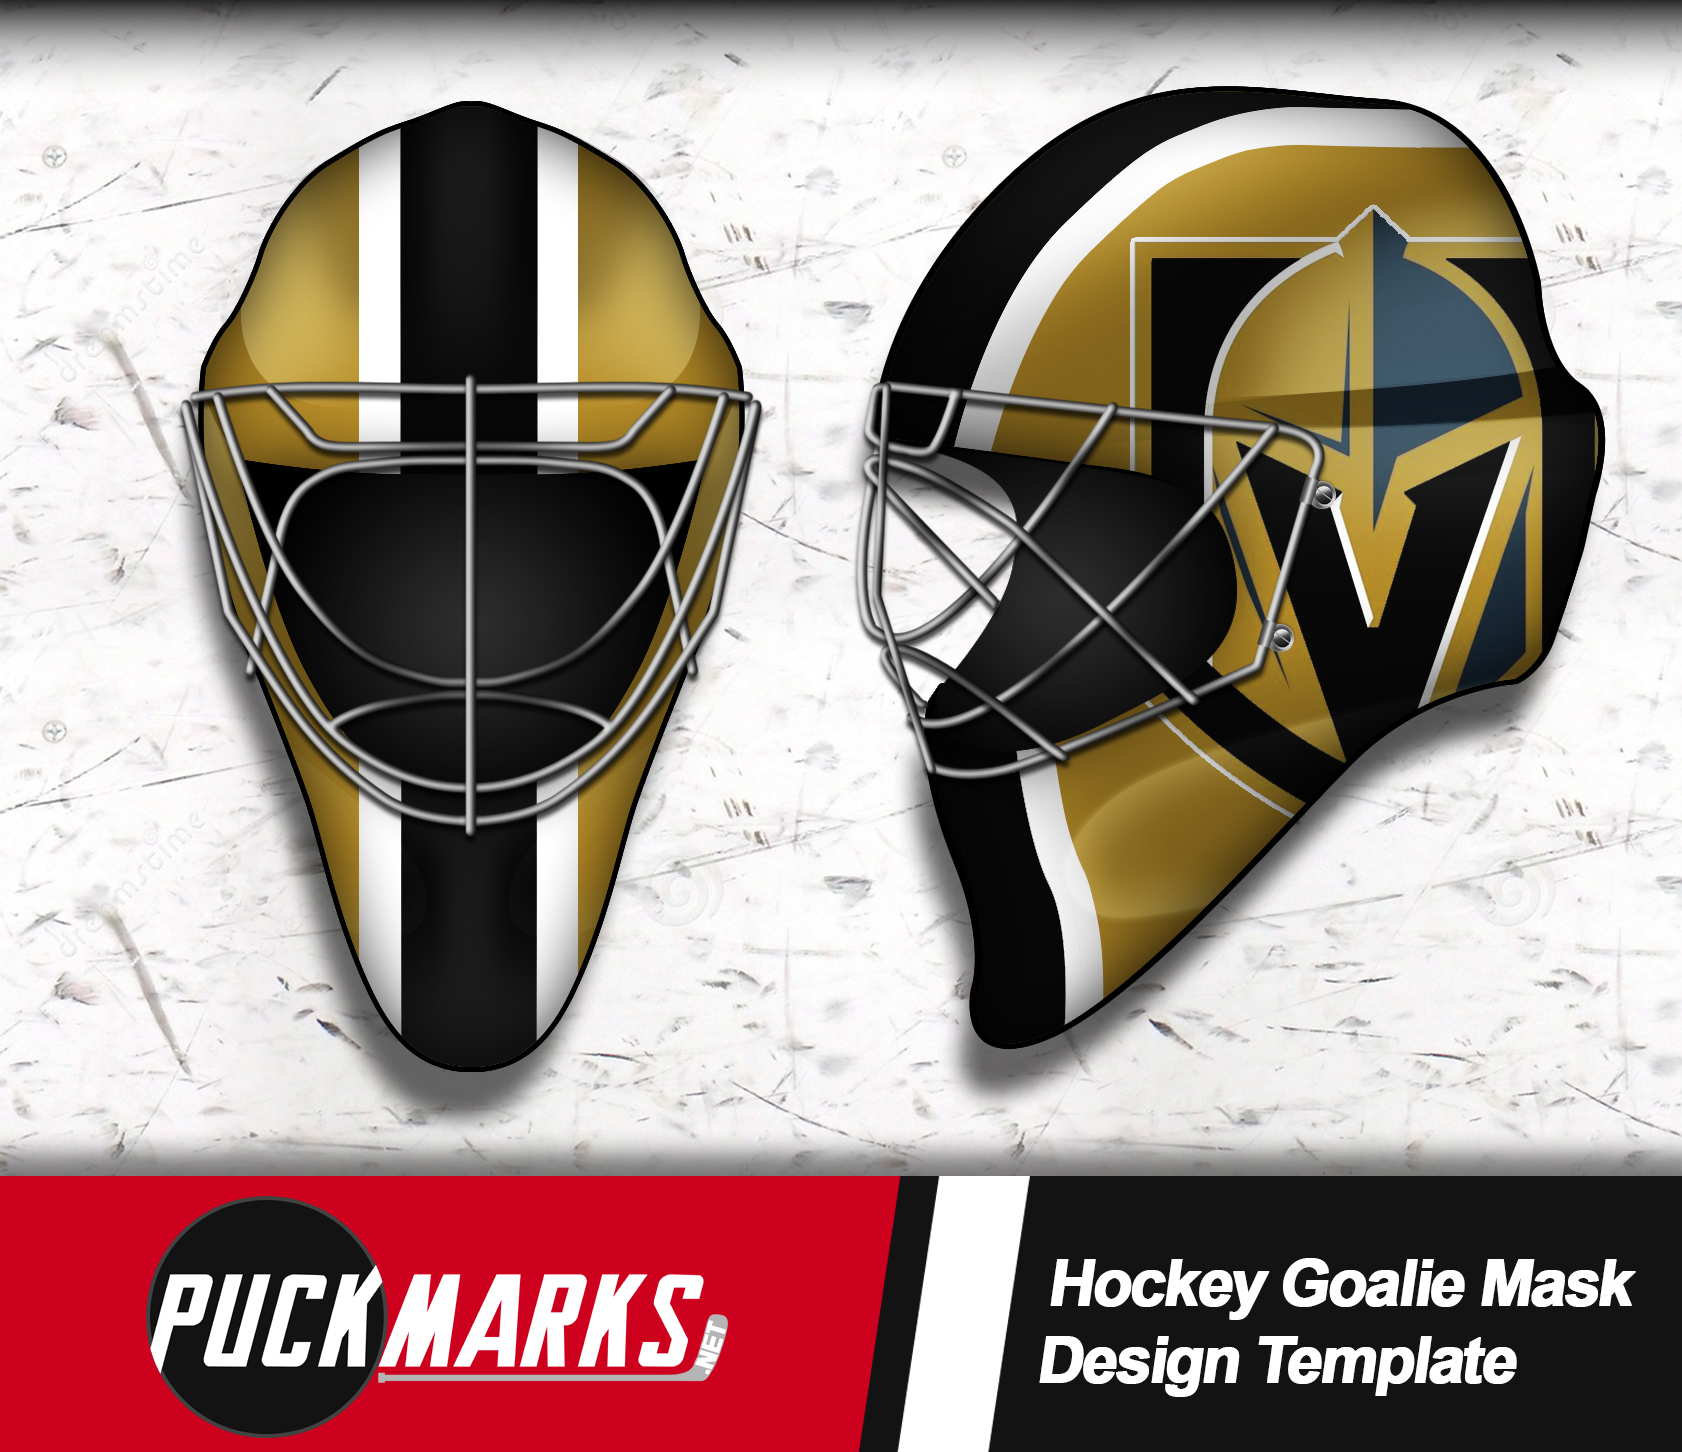 Golden Knights Goalie Mask Design